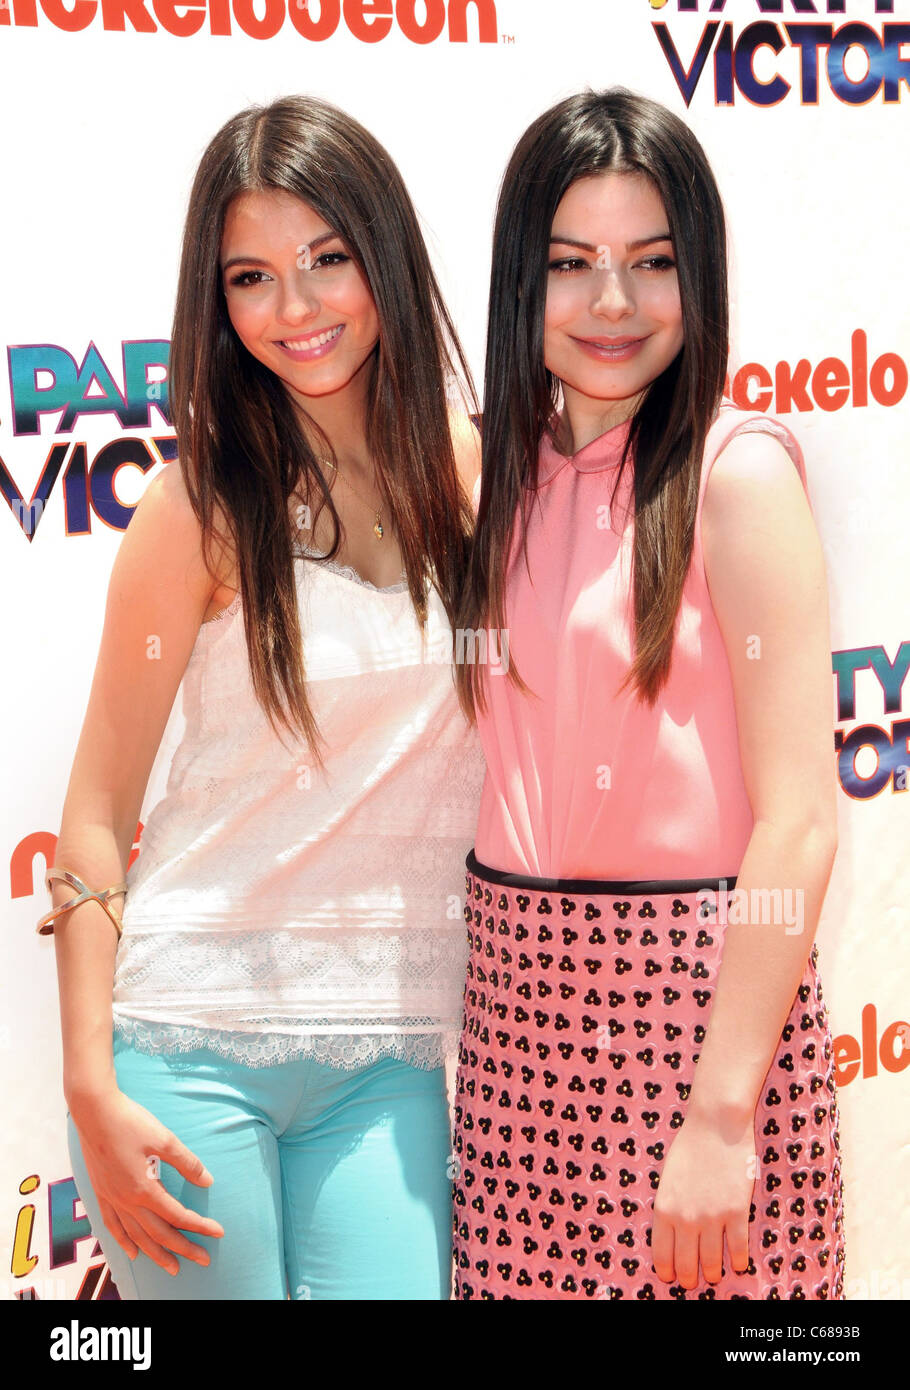 Victoria Justice, Miranda Cosgrove at arrivals for iParty With Victorious Premiere Party, The Lot, Los Angeles, - Stock Image